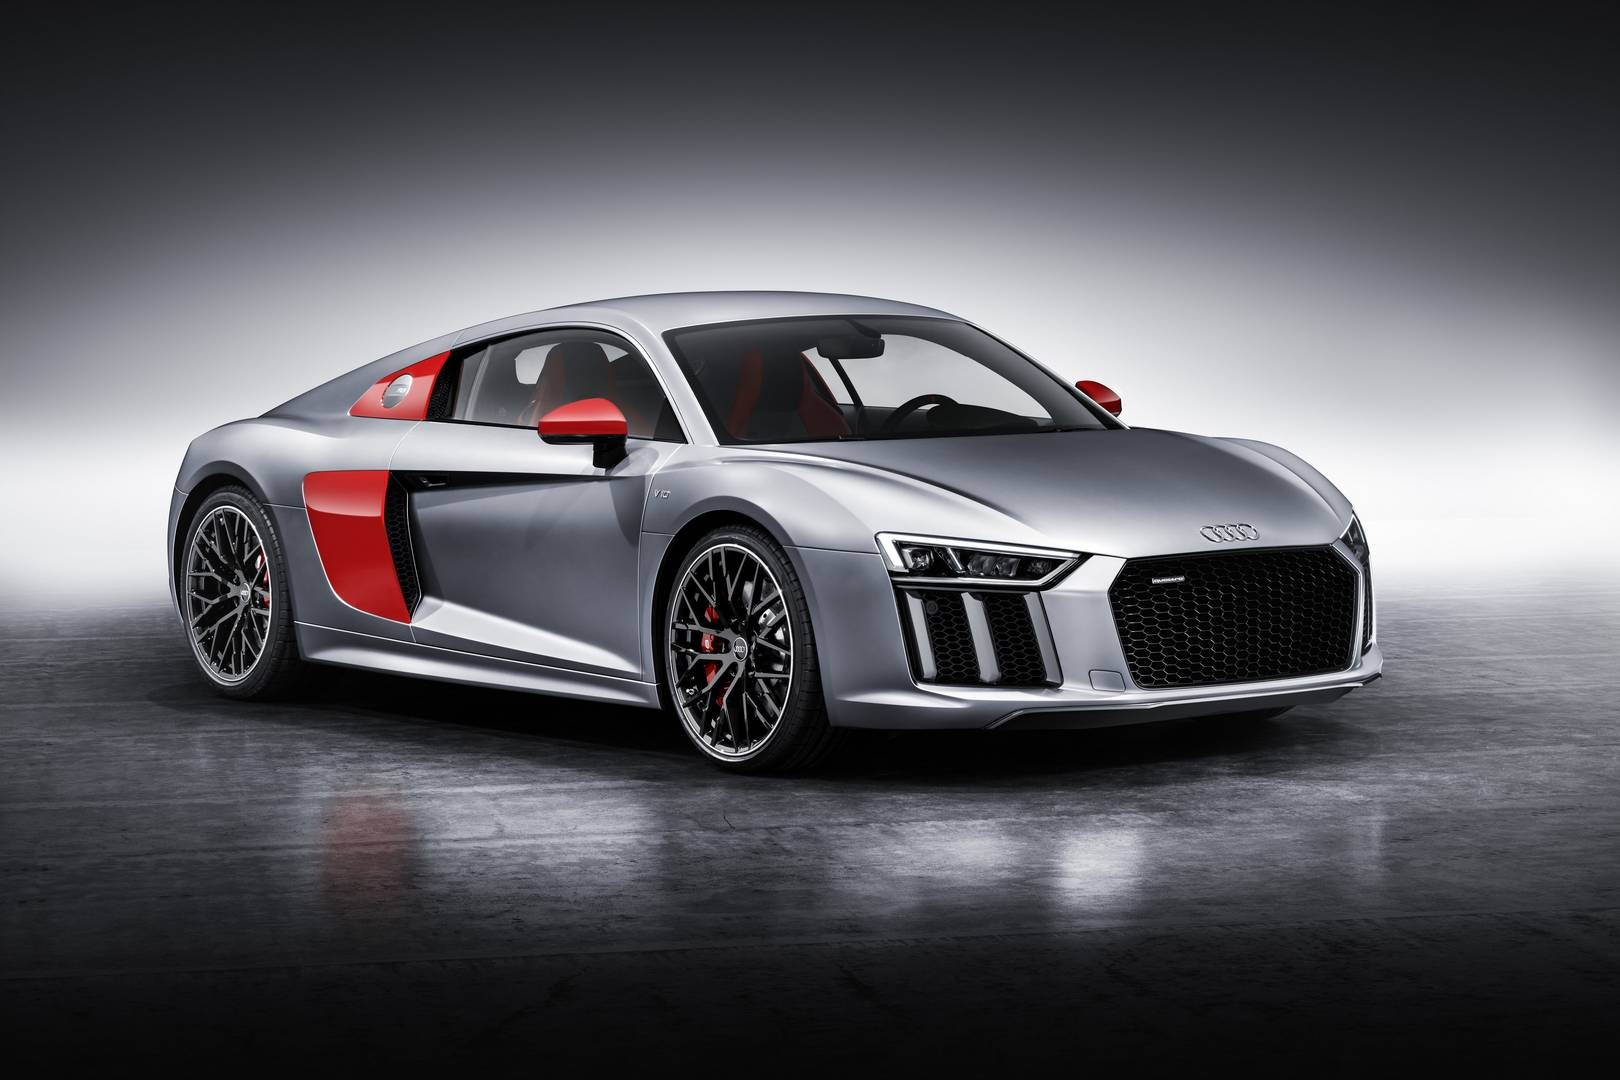 "official 2017 audi r8 v10 ""audi sport\"" edition 200 units onlyofficial 2017 audi r8 v10 \u201caudi sport\u201d edition \u2013 200 units only by"